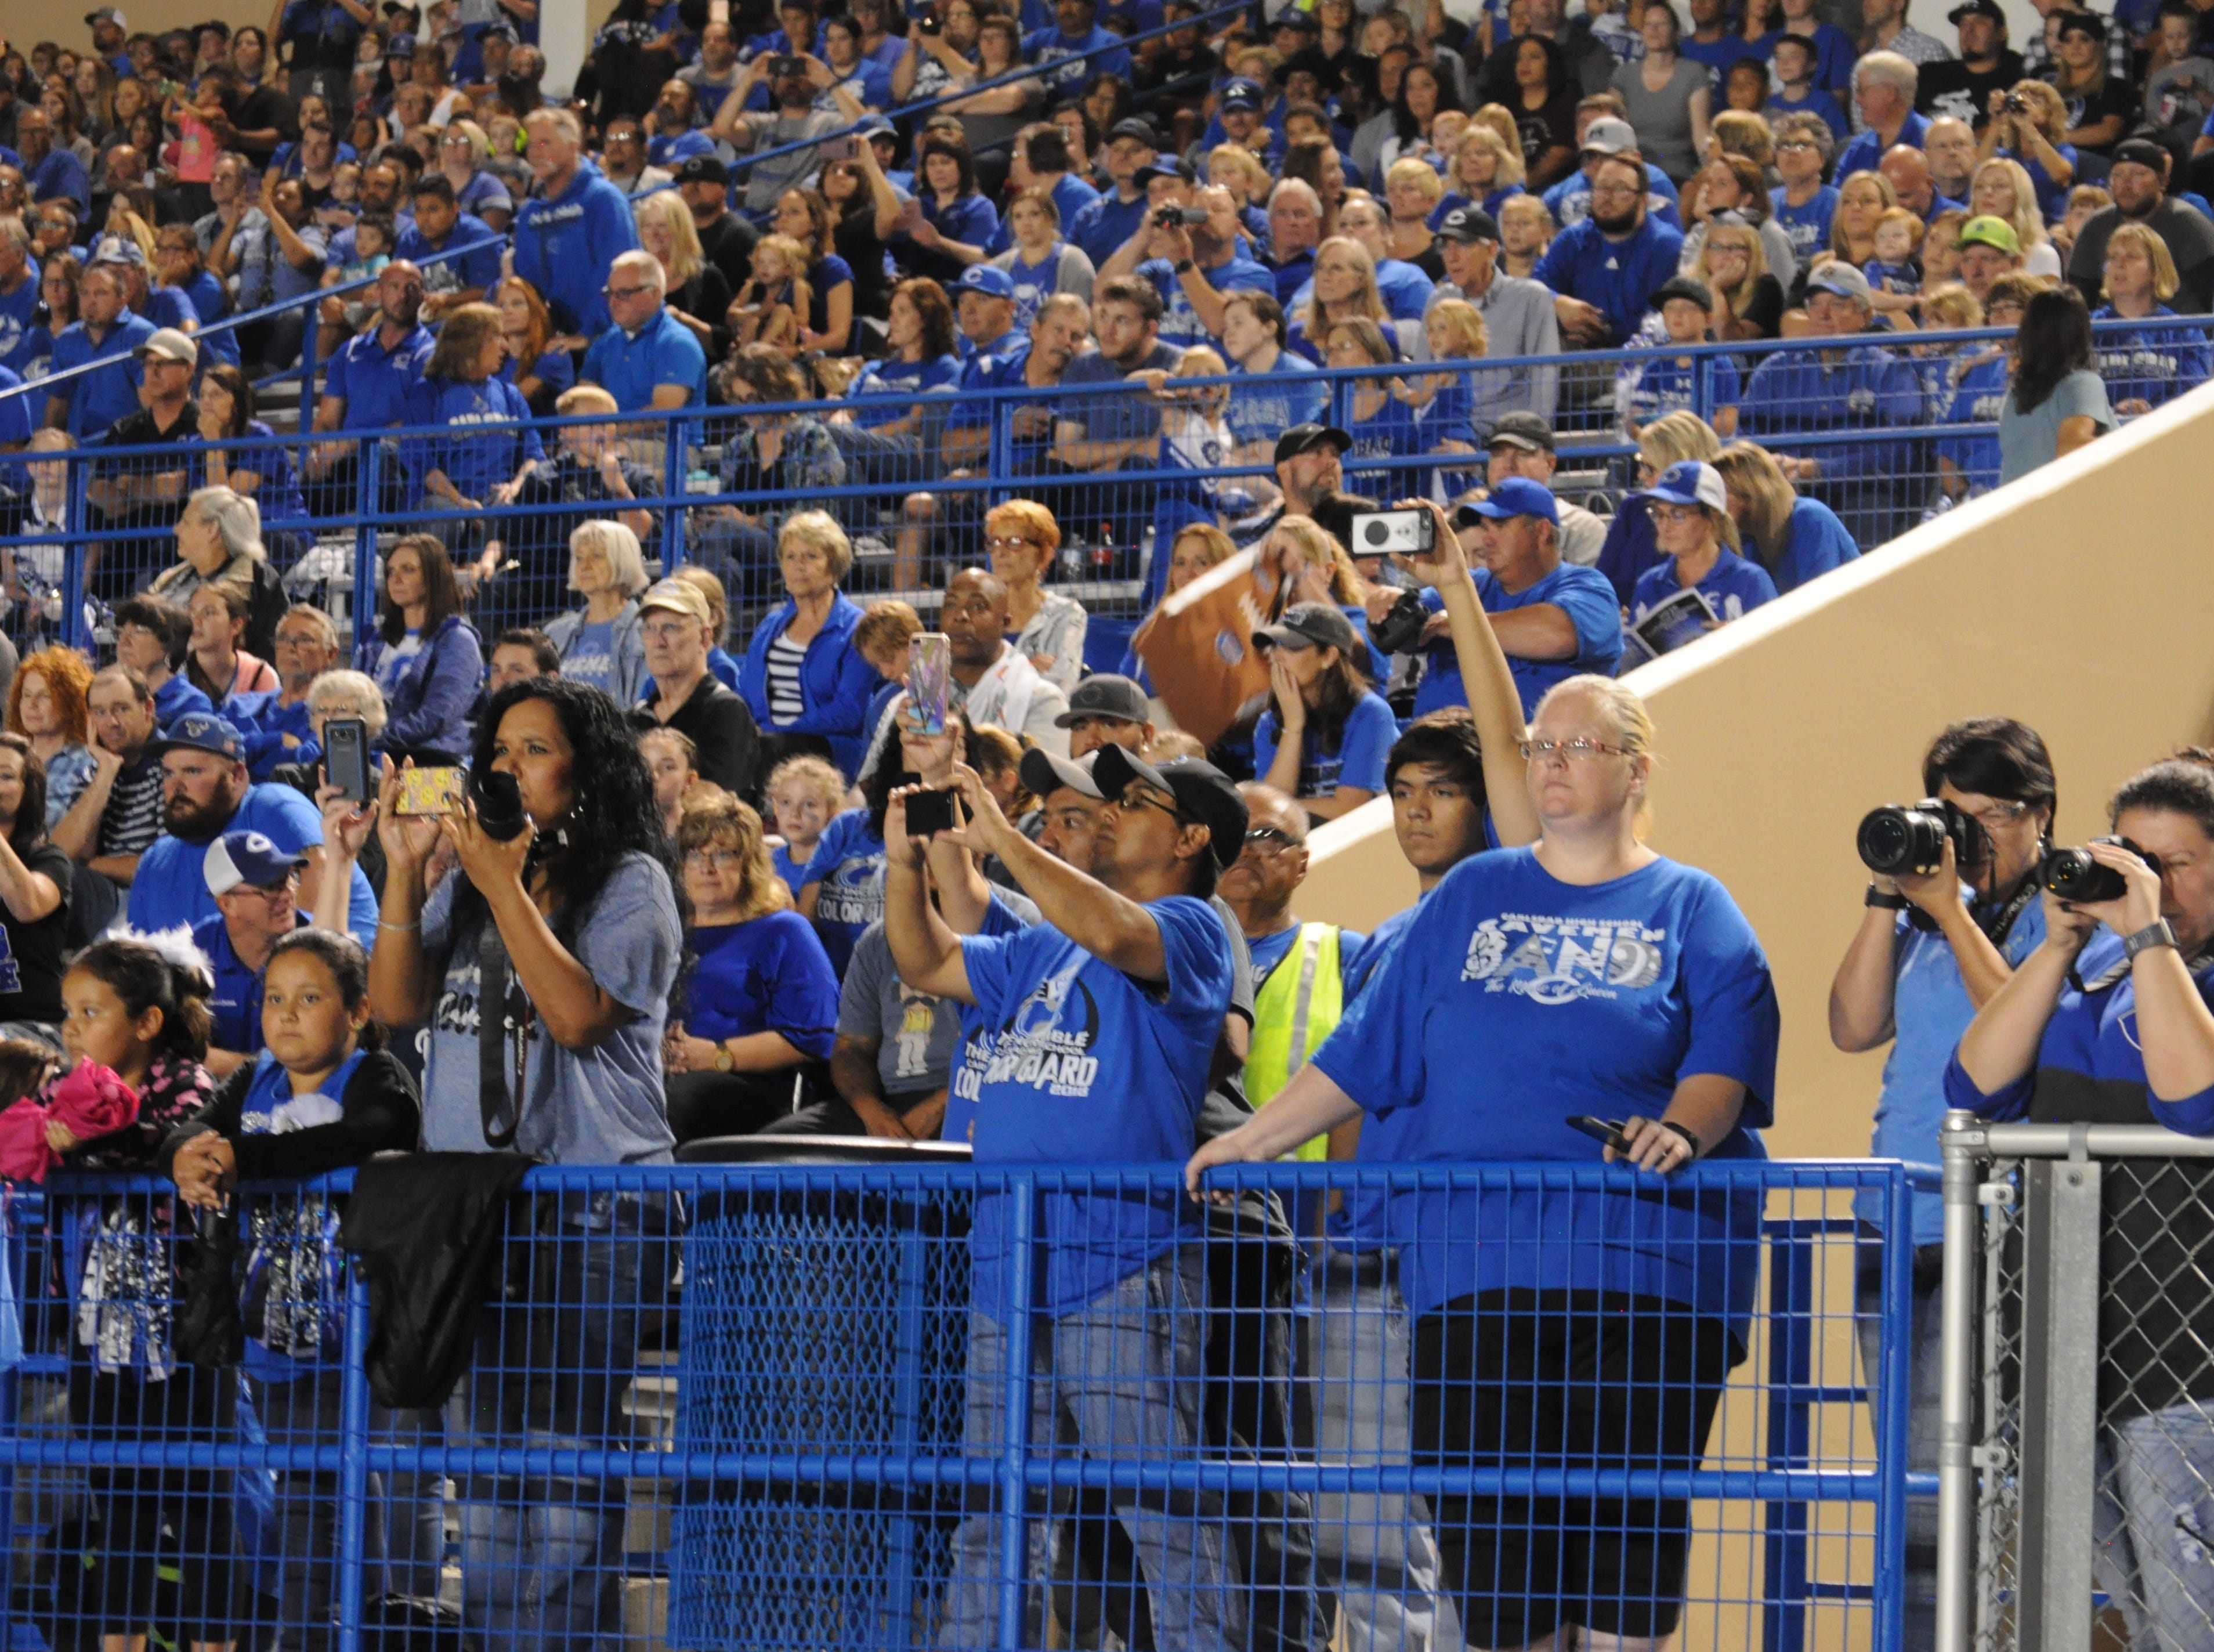 The crowd cheers on the Cavemen Band during halftime of the Carlsbad Homecoming game Sep. 7.